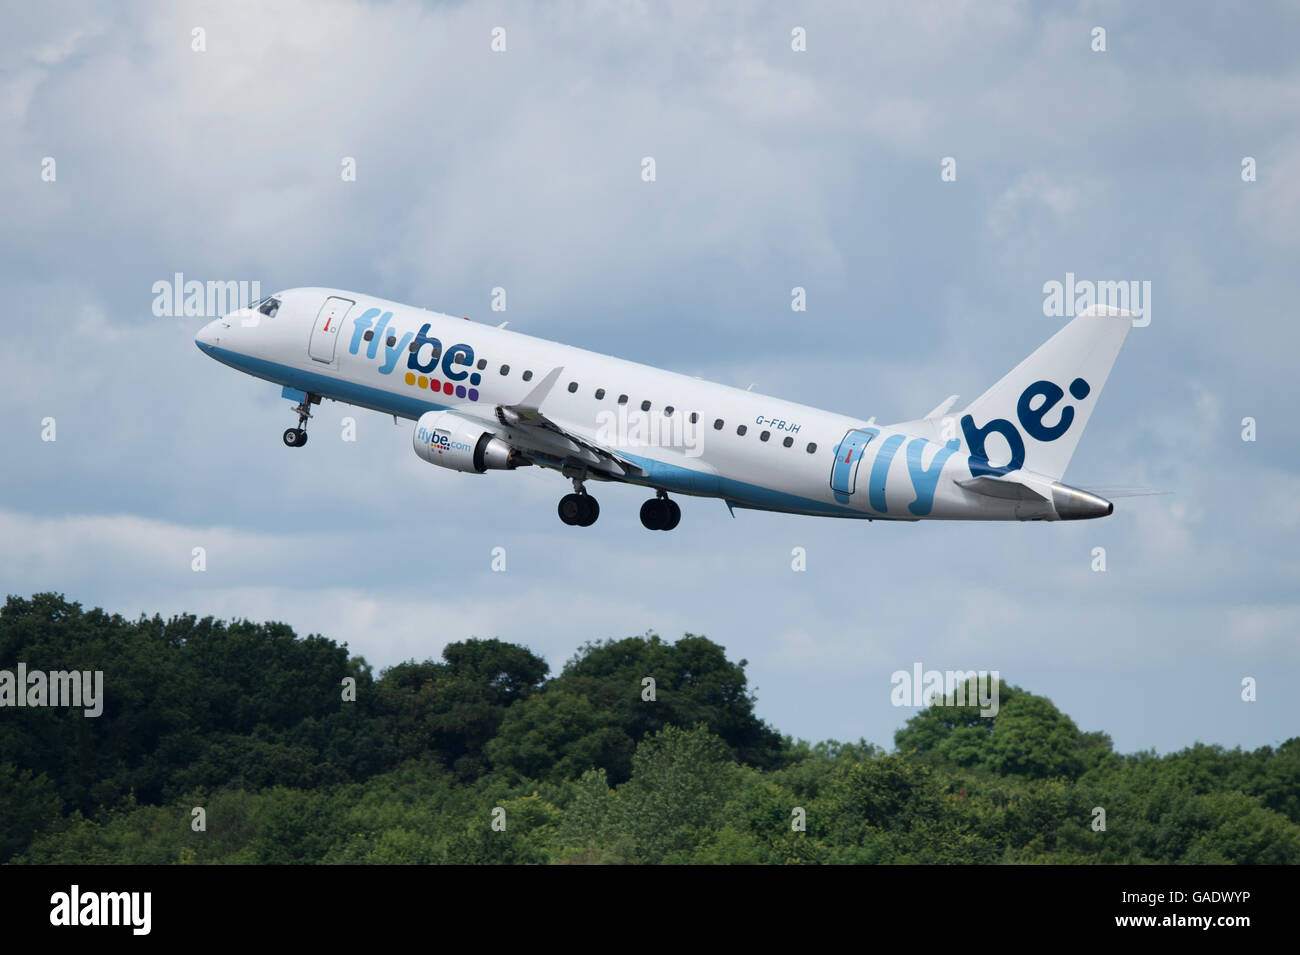 A Flybe Embraer 175 takes off from Manchester International Airport (Editorial use only) - Stock Image